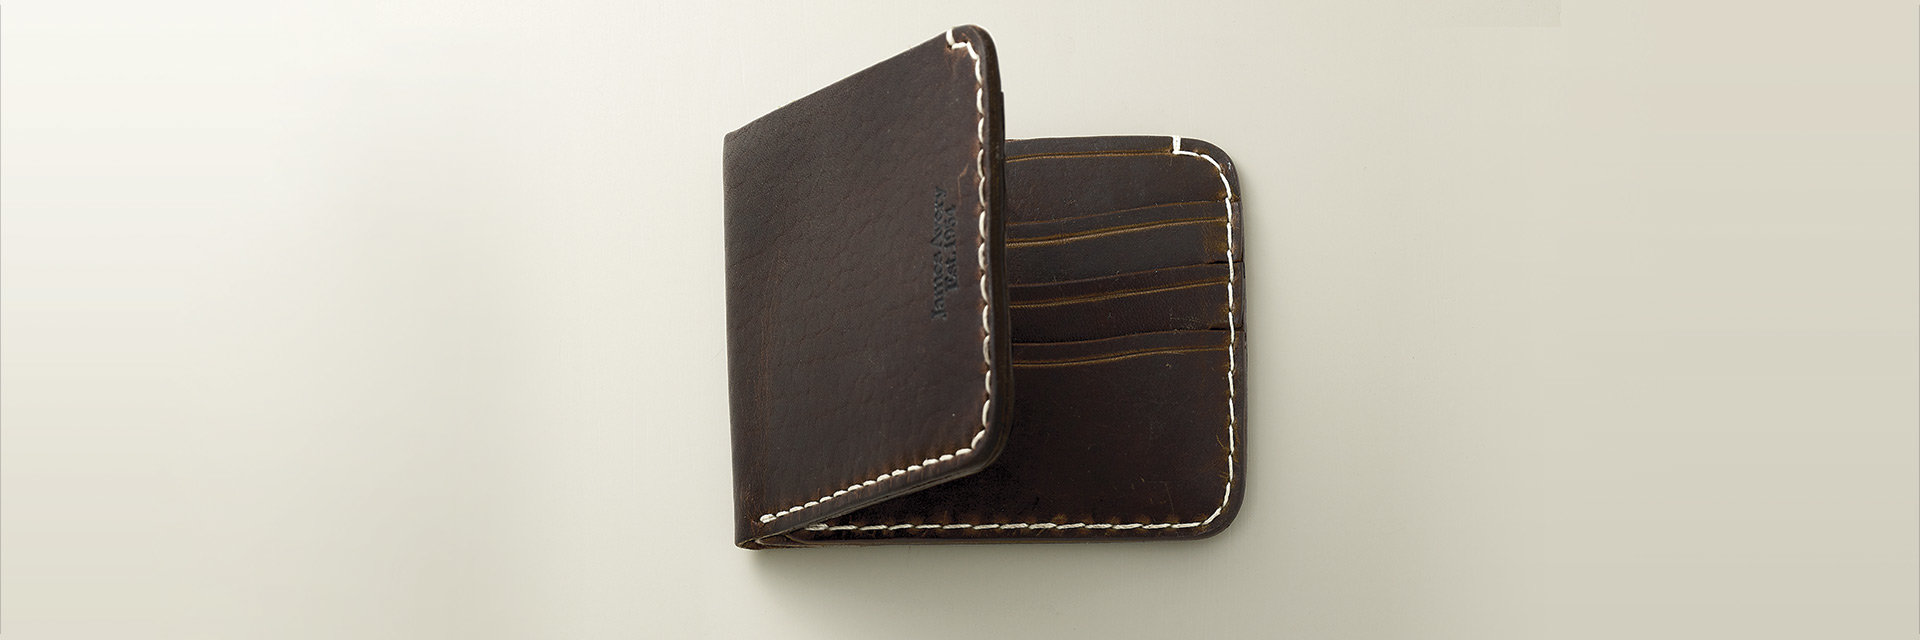 James Avery Leather Wallets